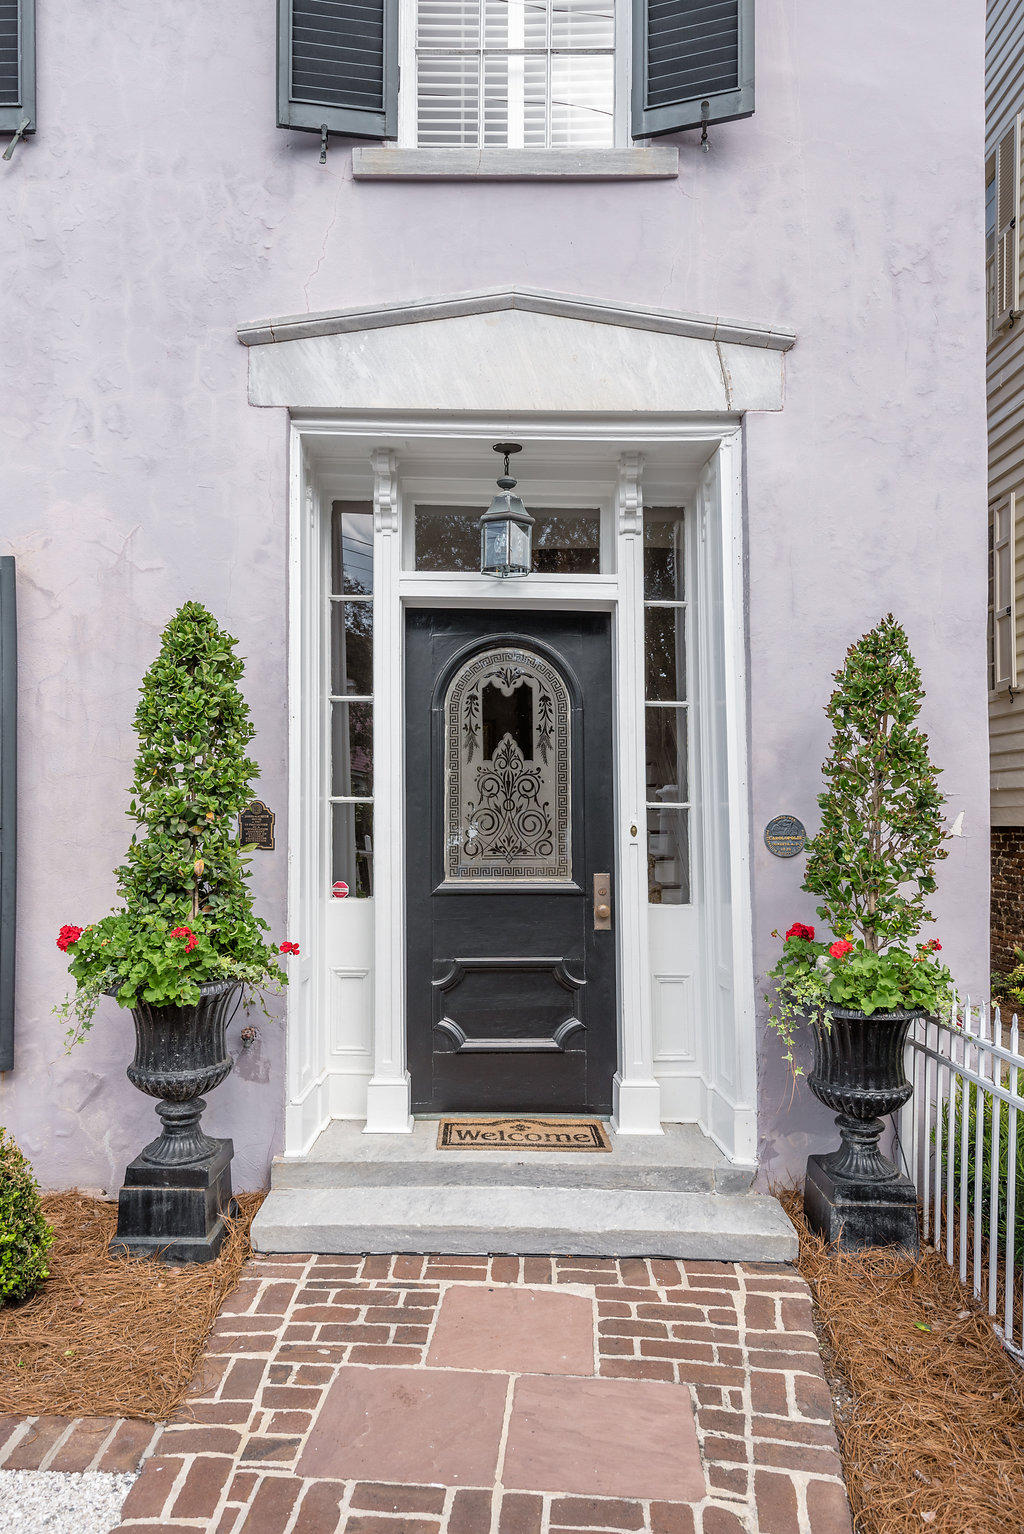 South of Broad Homes For Sale - 48&48 1/2 South Battery, Charleston, SC - 106